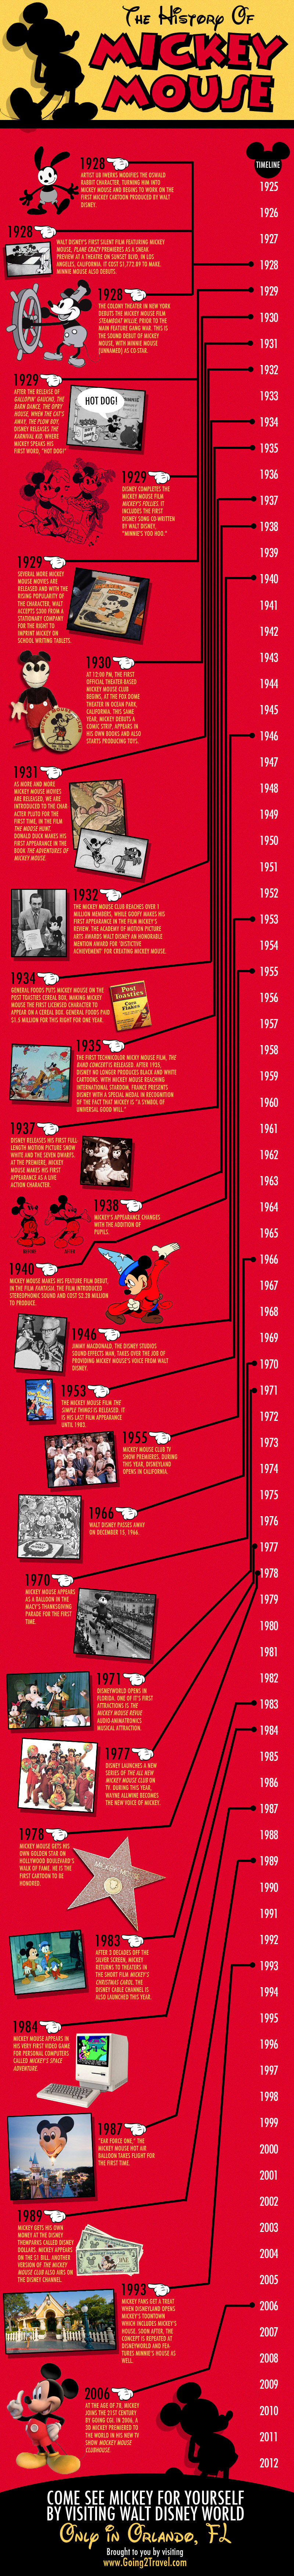 Visual History of Mickey Mouse